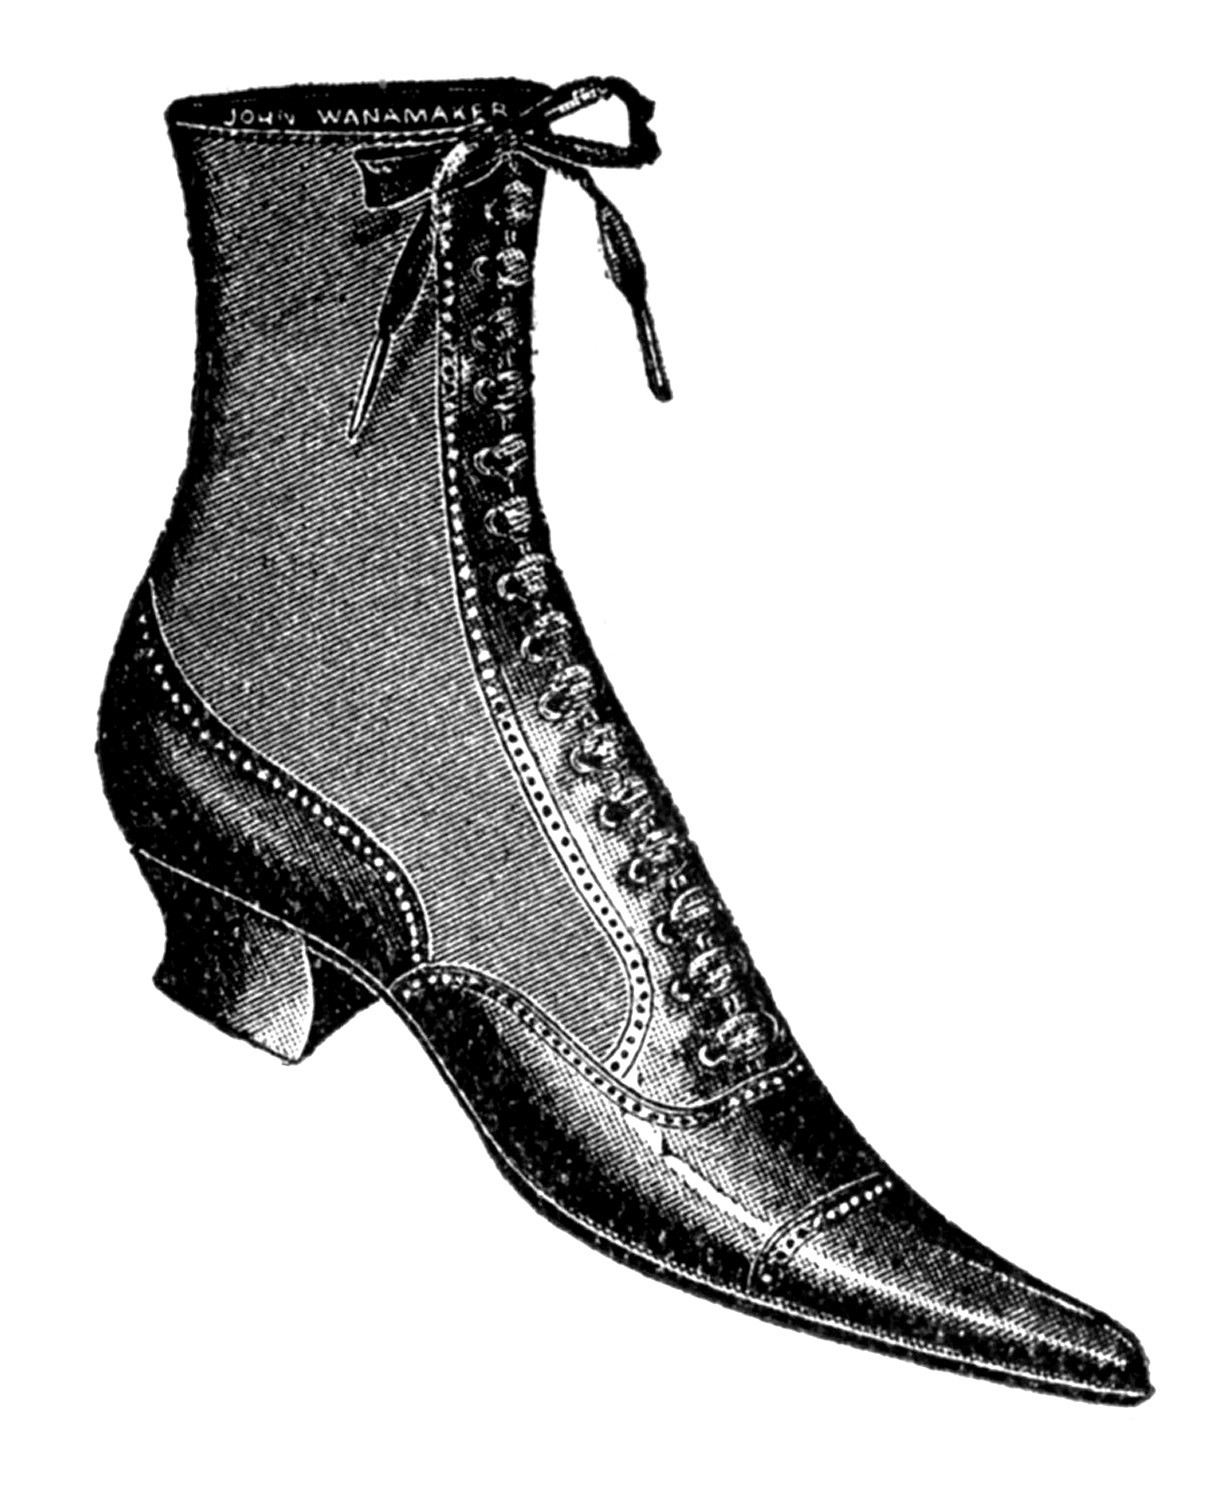 Vintage clip art ladies. Boot clipart old boot